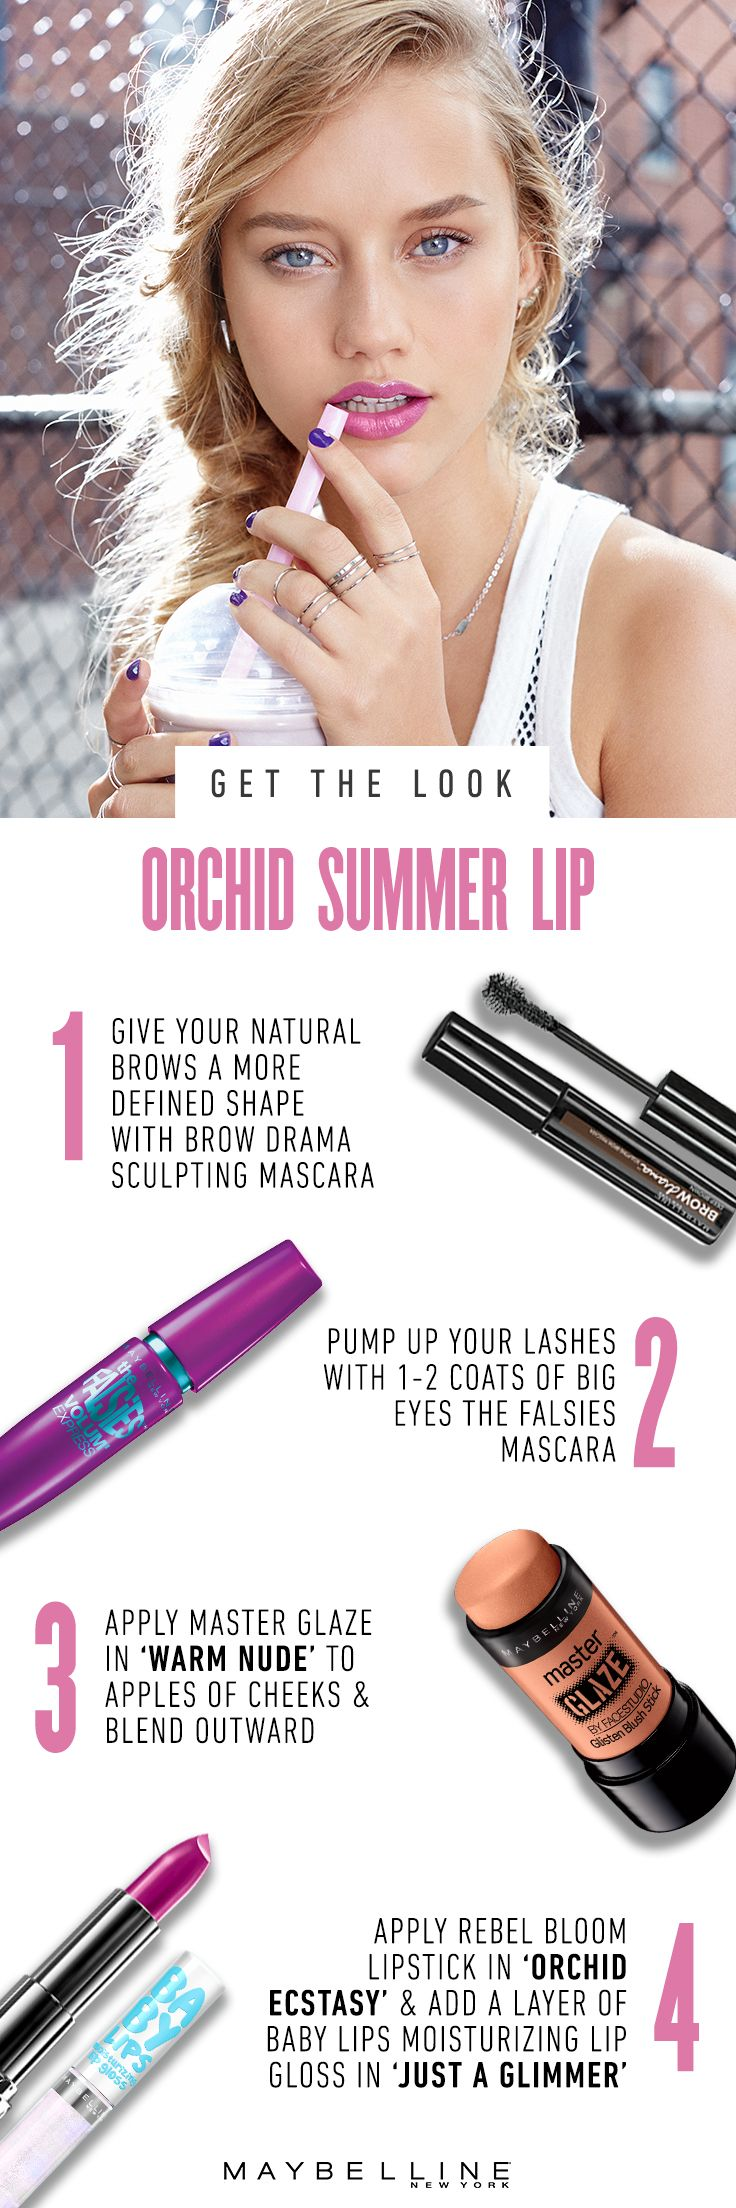 Want a flirty, fresh look that's perfect for playing hooky